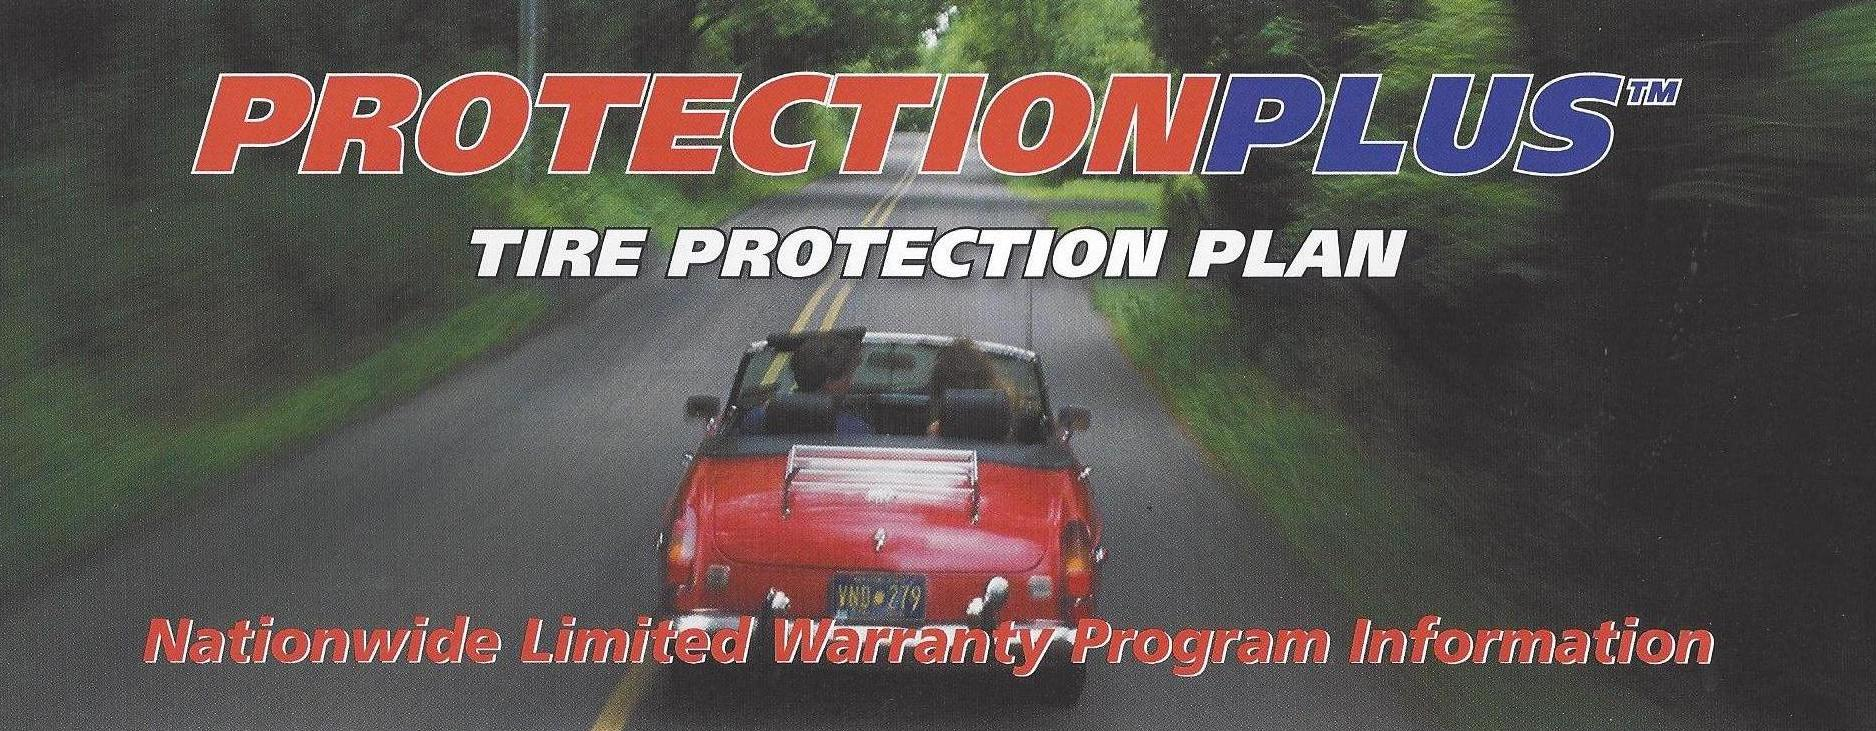 protectionplus1aa.jpg